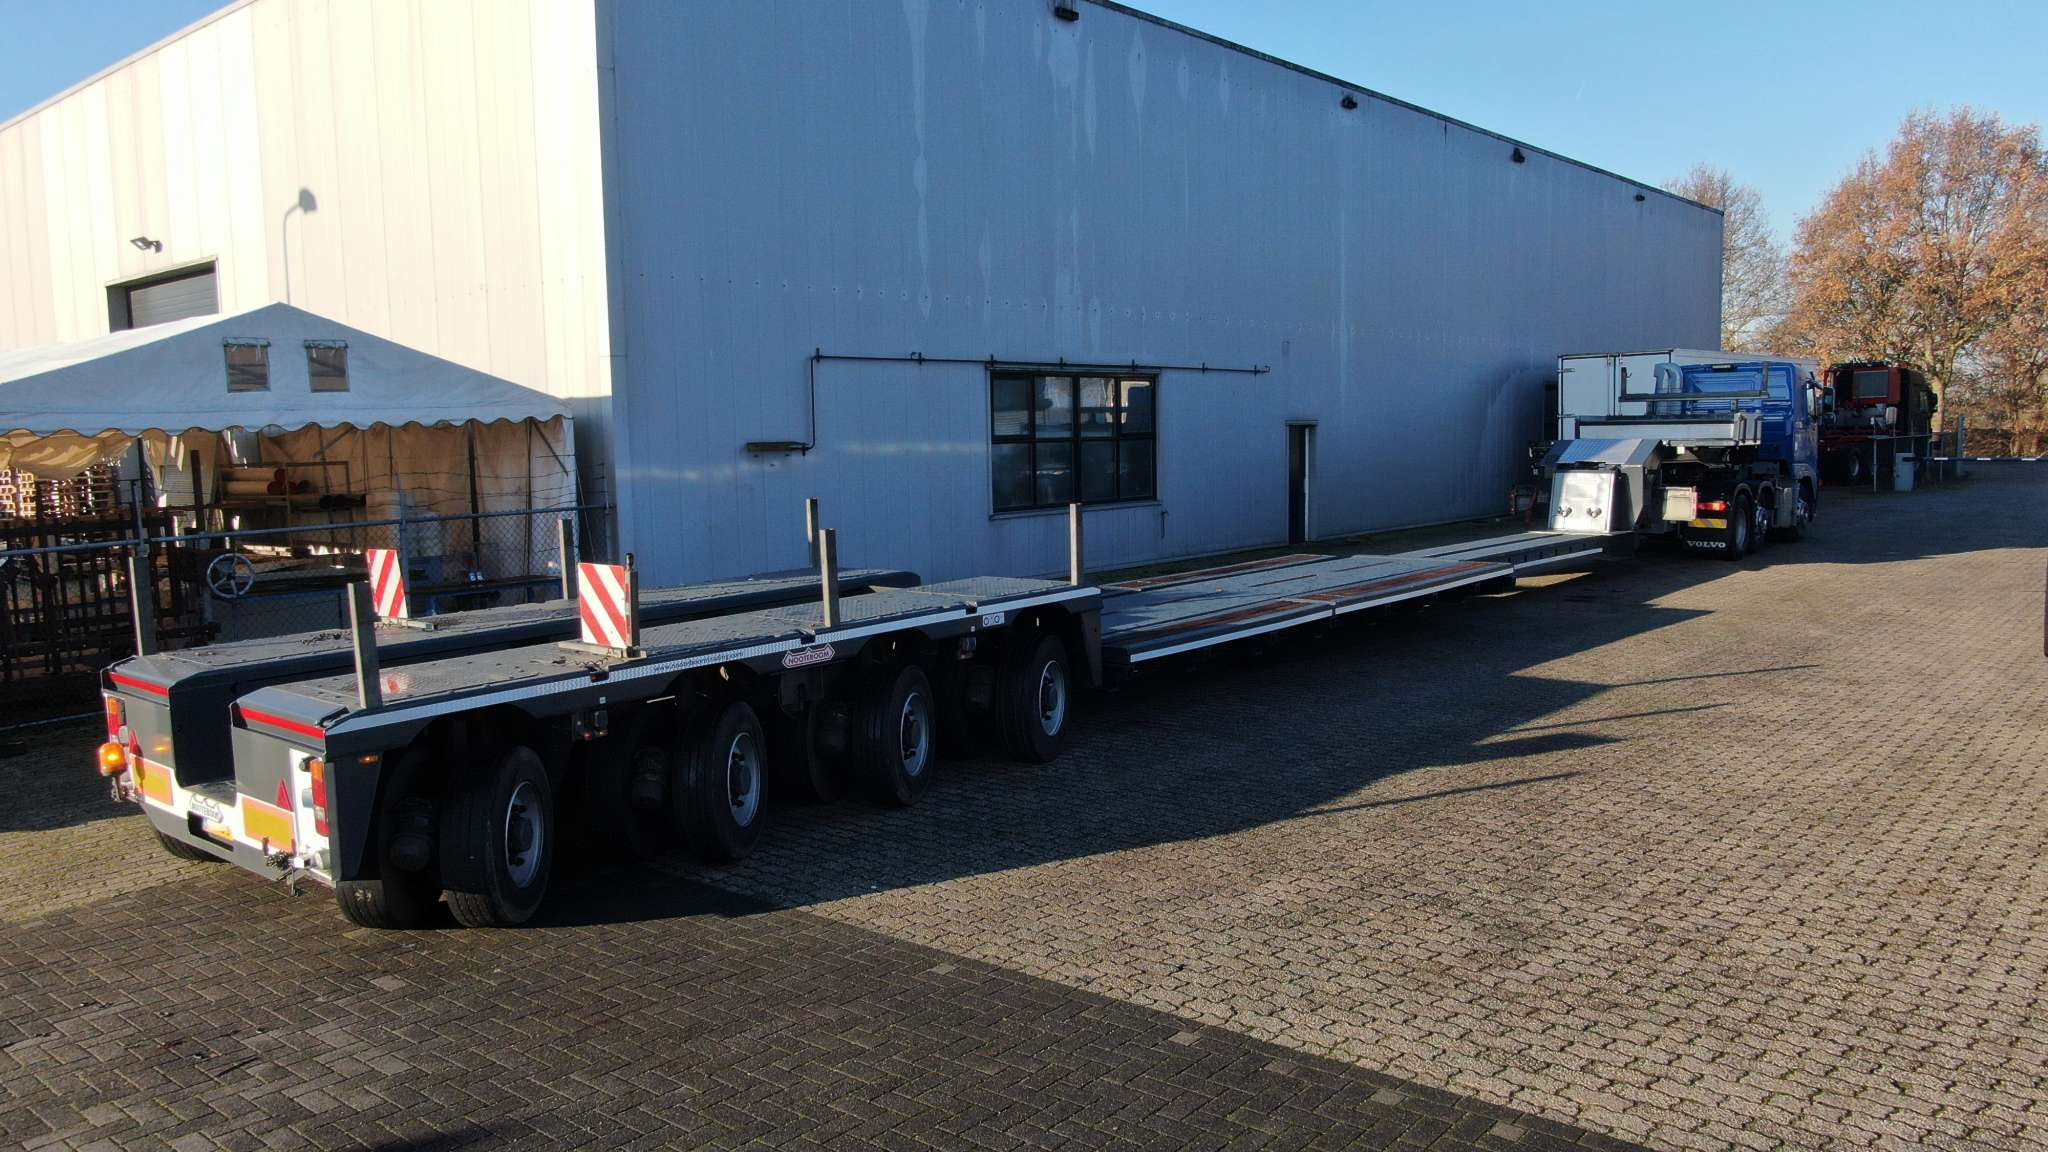 4 Pendel axle lowbed with spine bed, extendable till 12,7 meter, payload 75 ton, suitable for 1 or 2 axle jeepdolly.